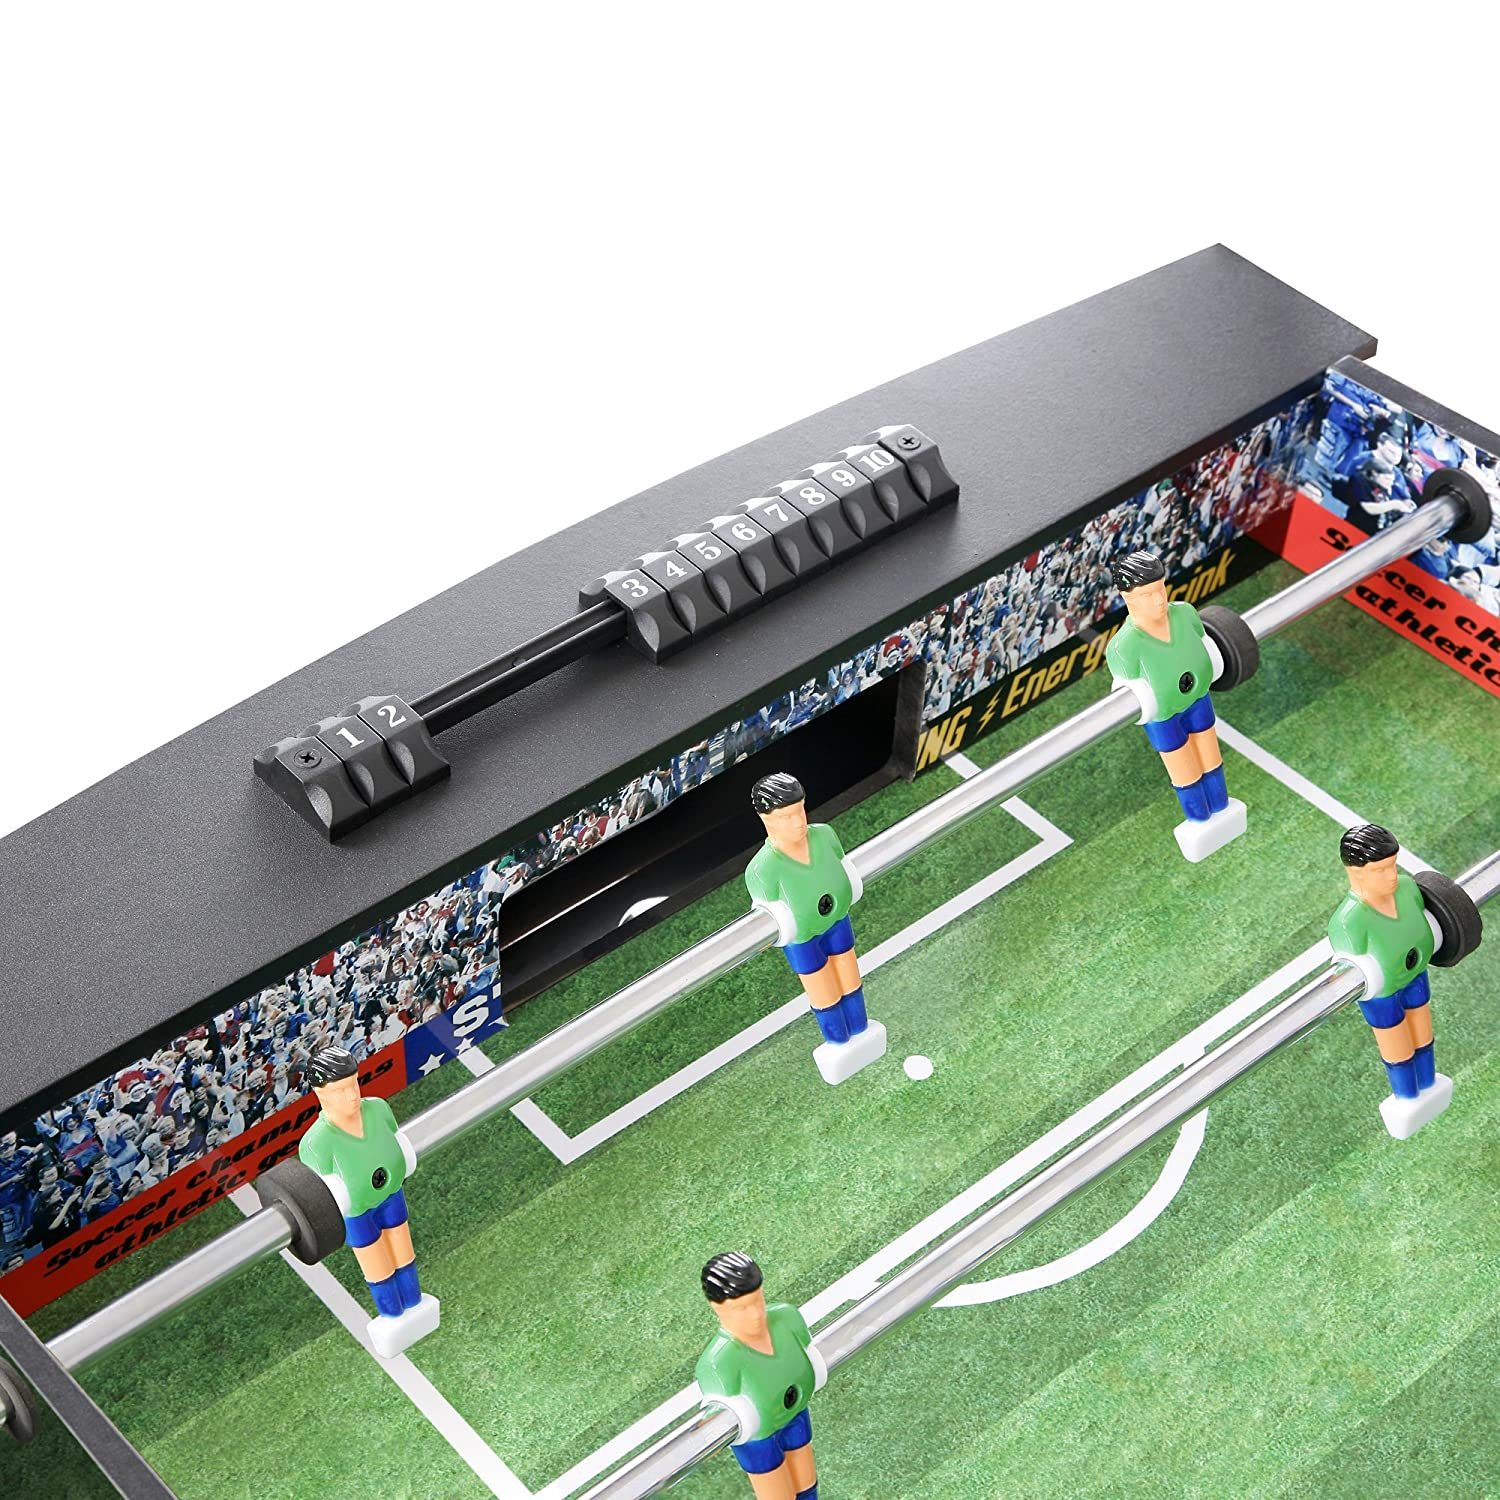 Great Amazon.com : Hathaway Playoff 4u0027 Foosball Table, Soccer Game For Kids And  Adults With Ergonomic Handles, Analog Scoring And Leg Levelers : Foosball  Tables ...